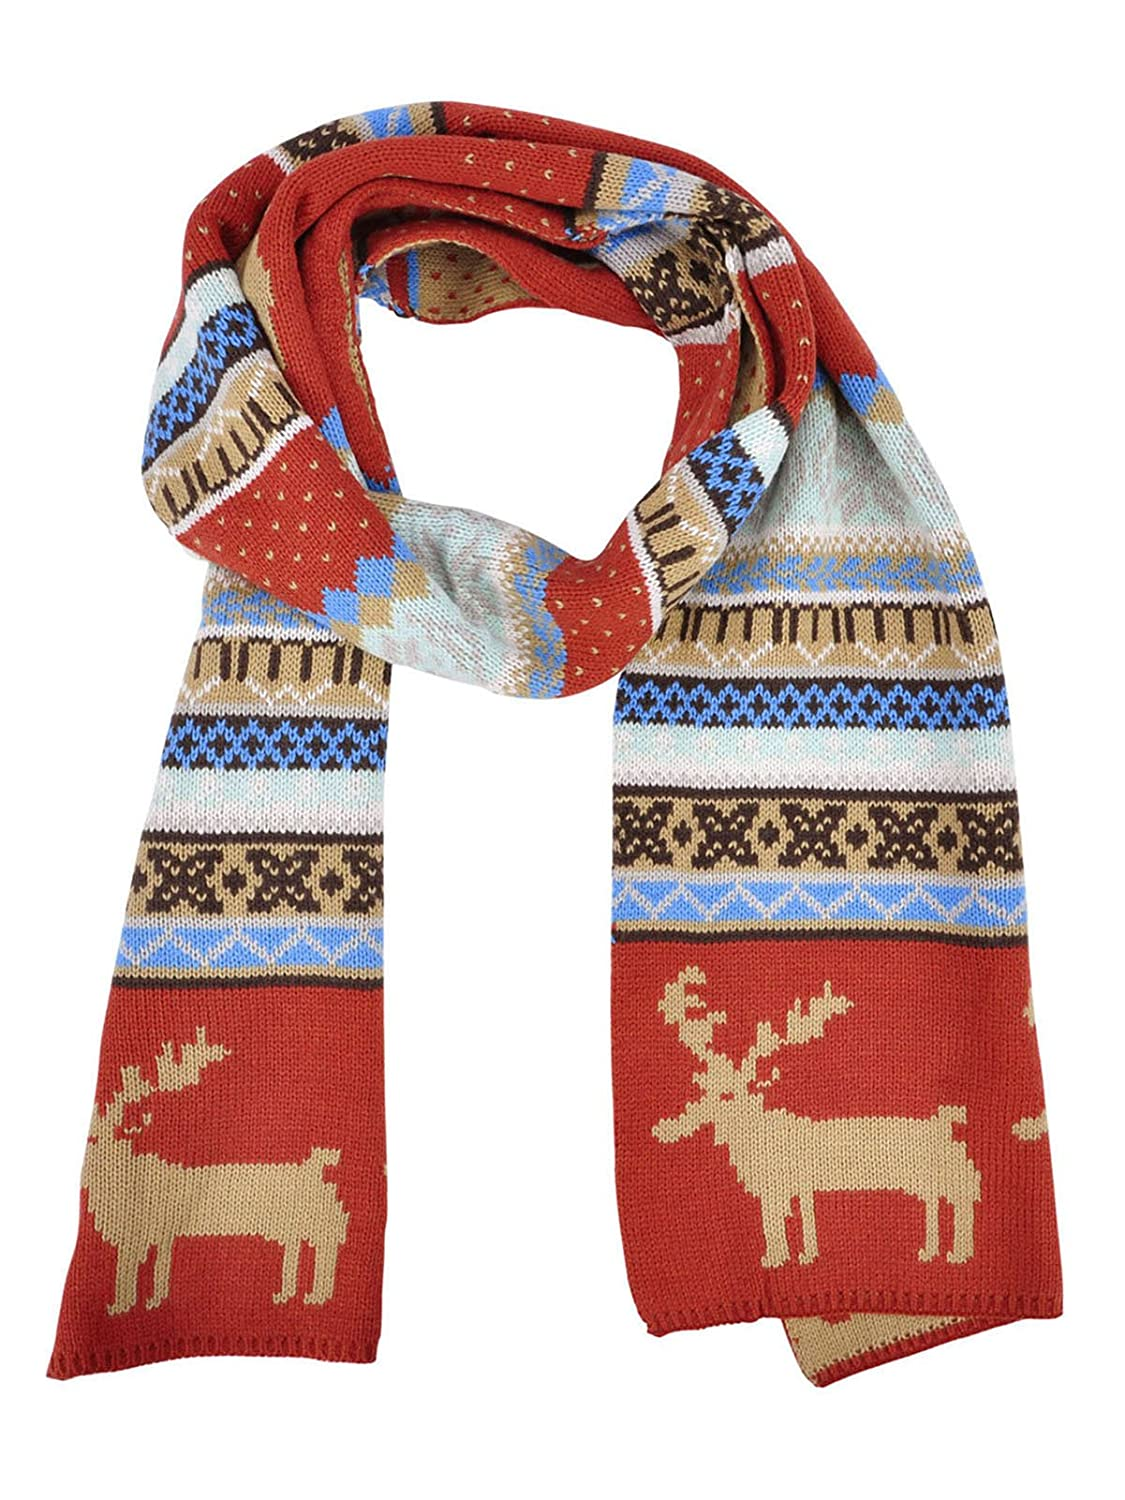 AshopZ Multi-color Knit Wool Winter Scarf Reindeer Pattern Shawl Rust-red /Khaki